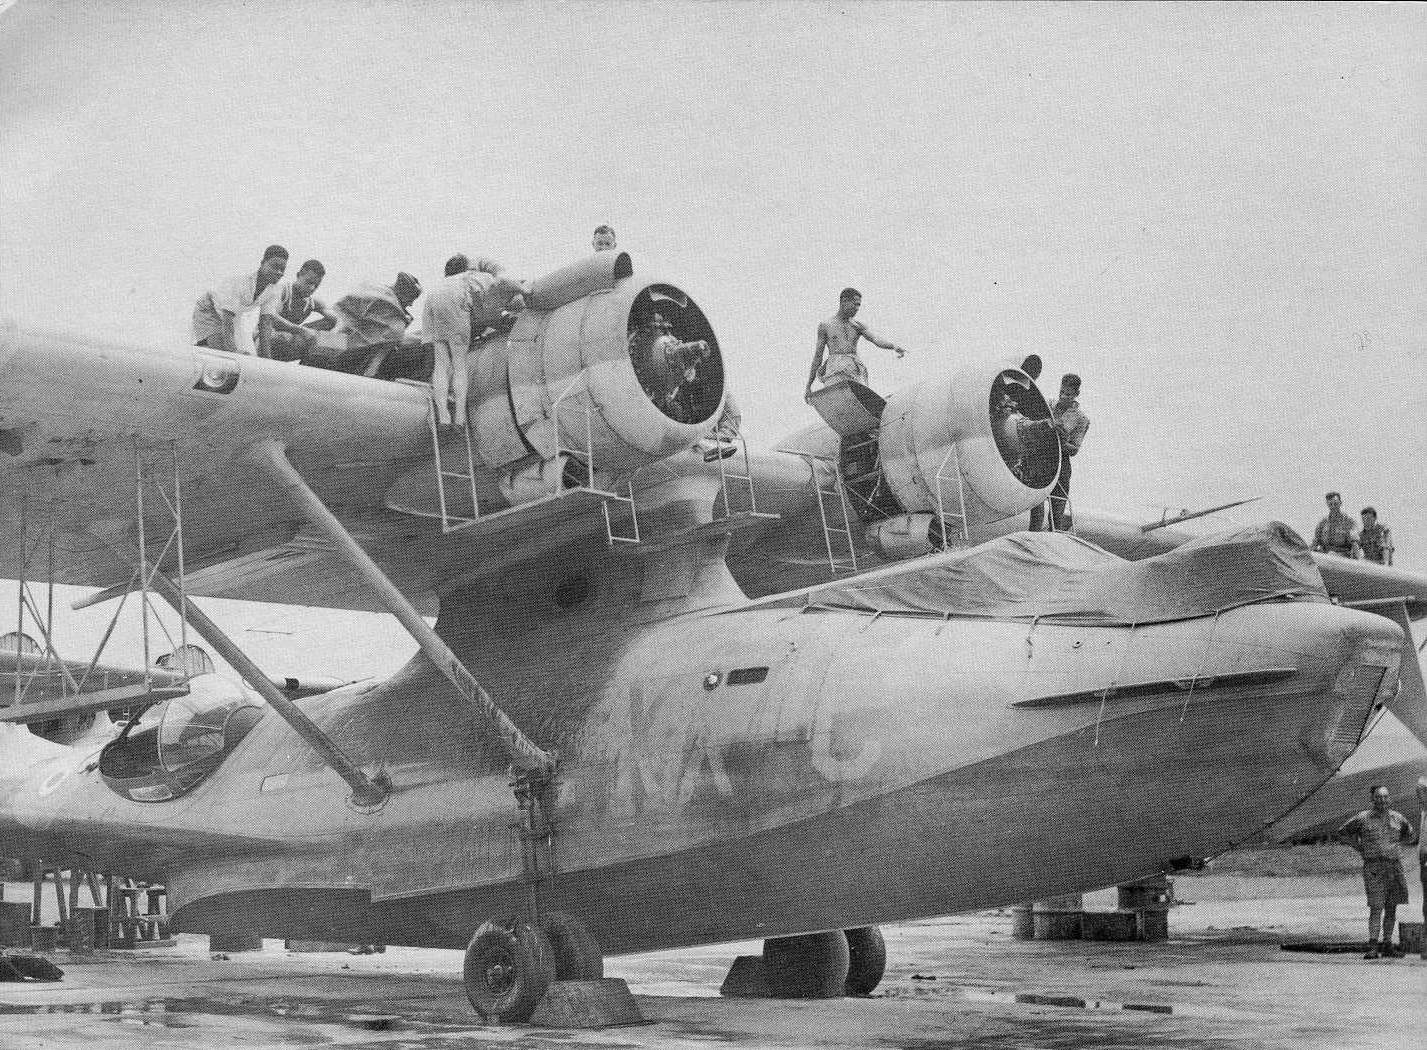 PBY5 Catalina flying boat from No. 6 Squadron being